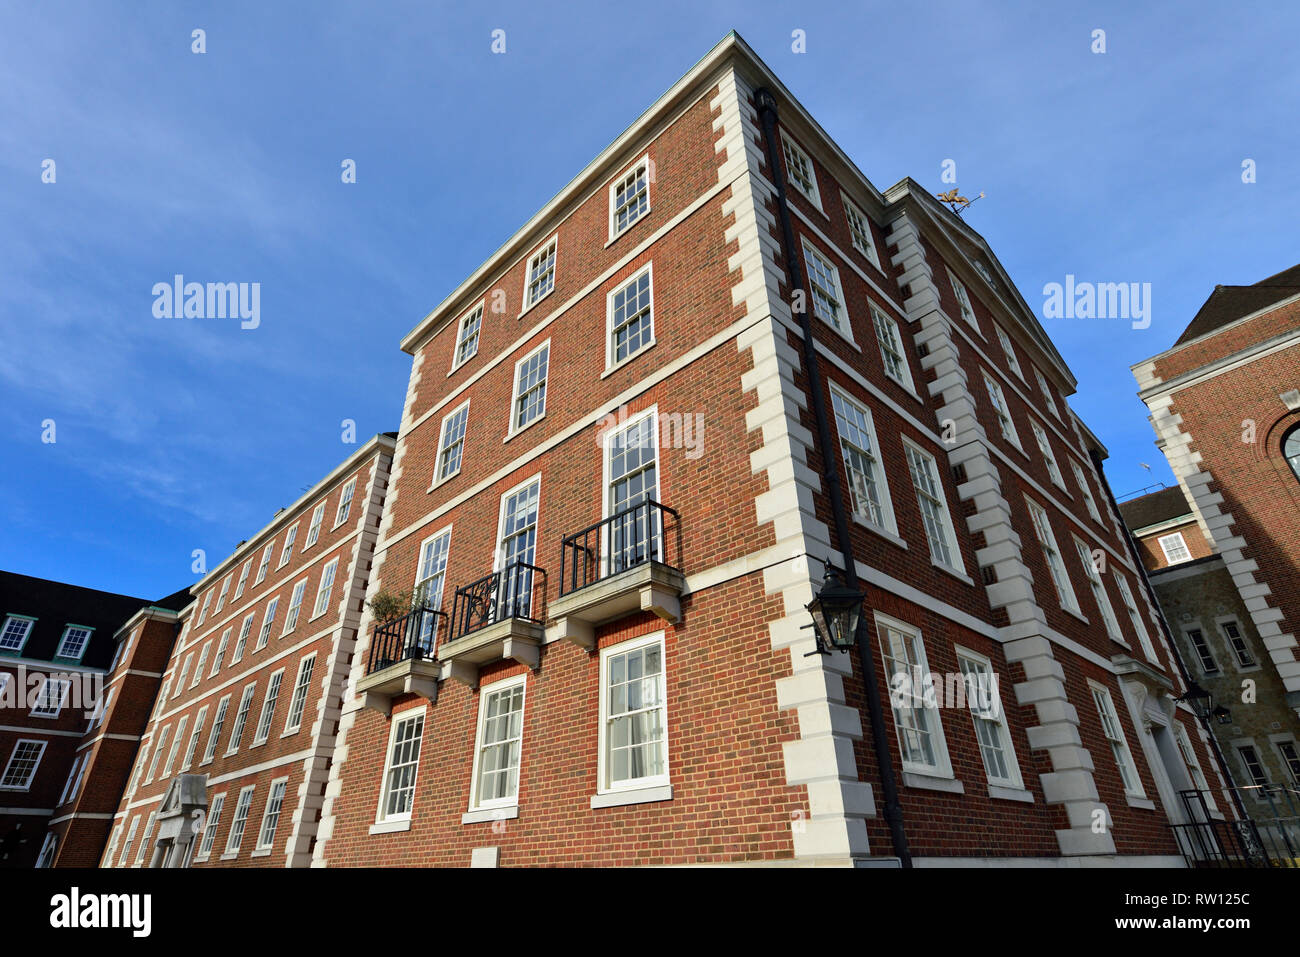 Crown Office Row, Temple legal district, City of London, United Kingdom - Stock Image